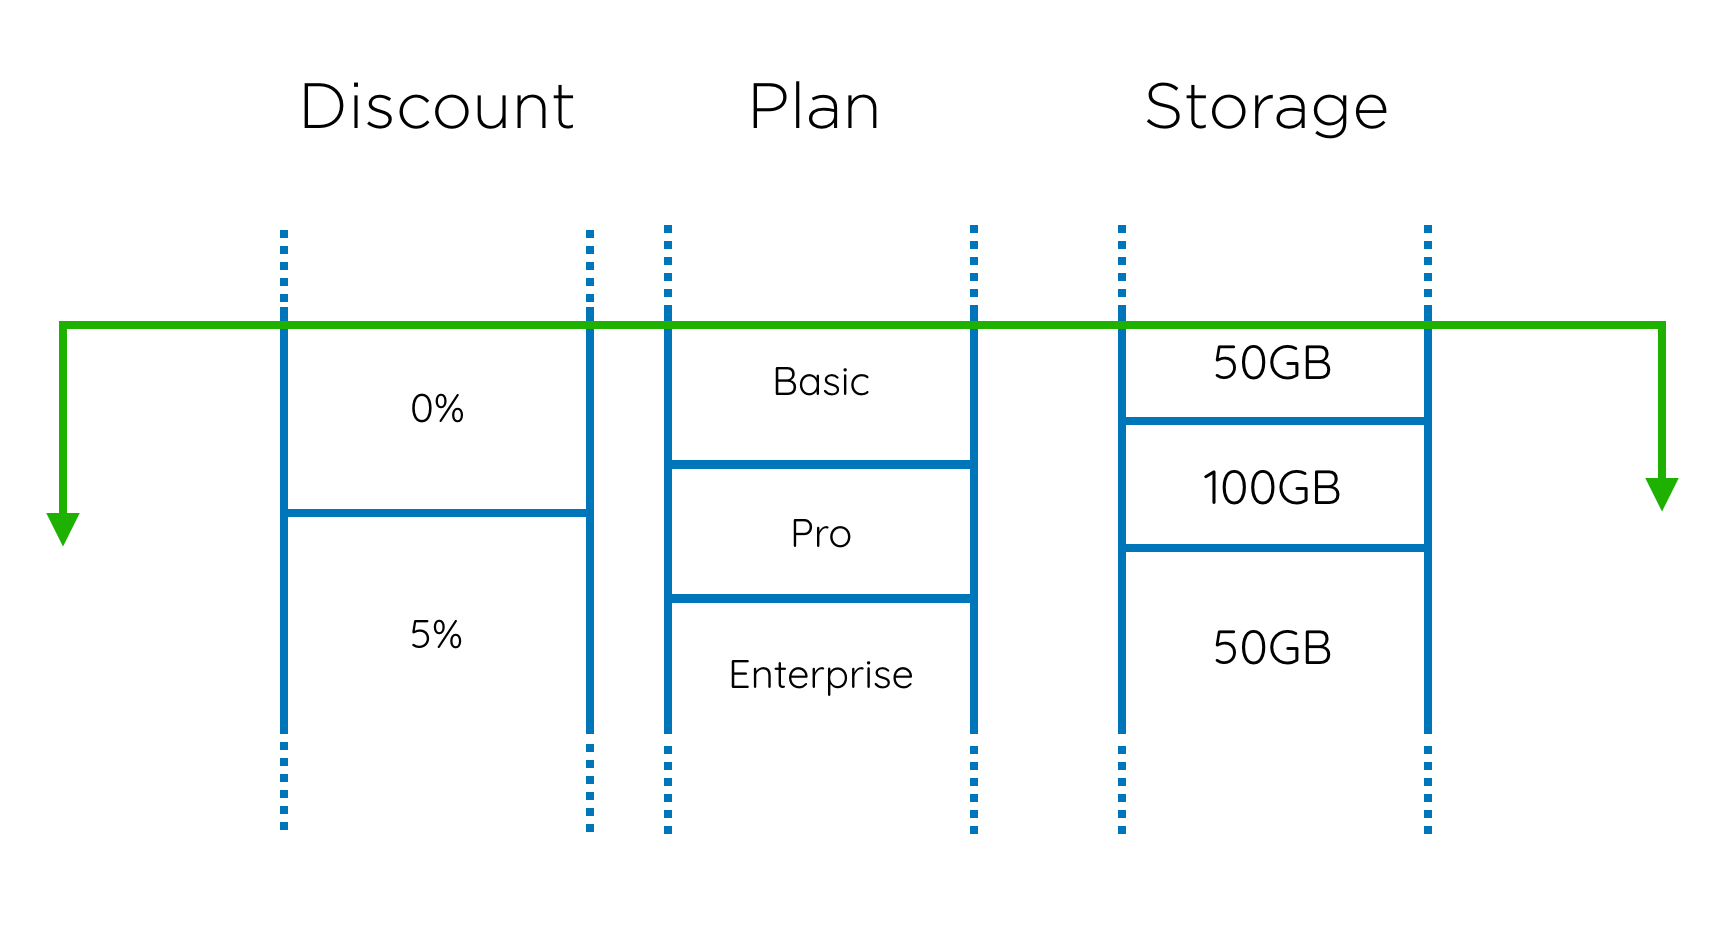 Overlapping plans, storage volumes and discounts